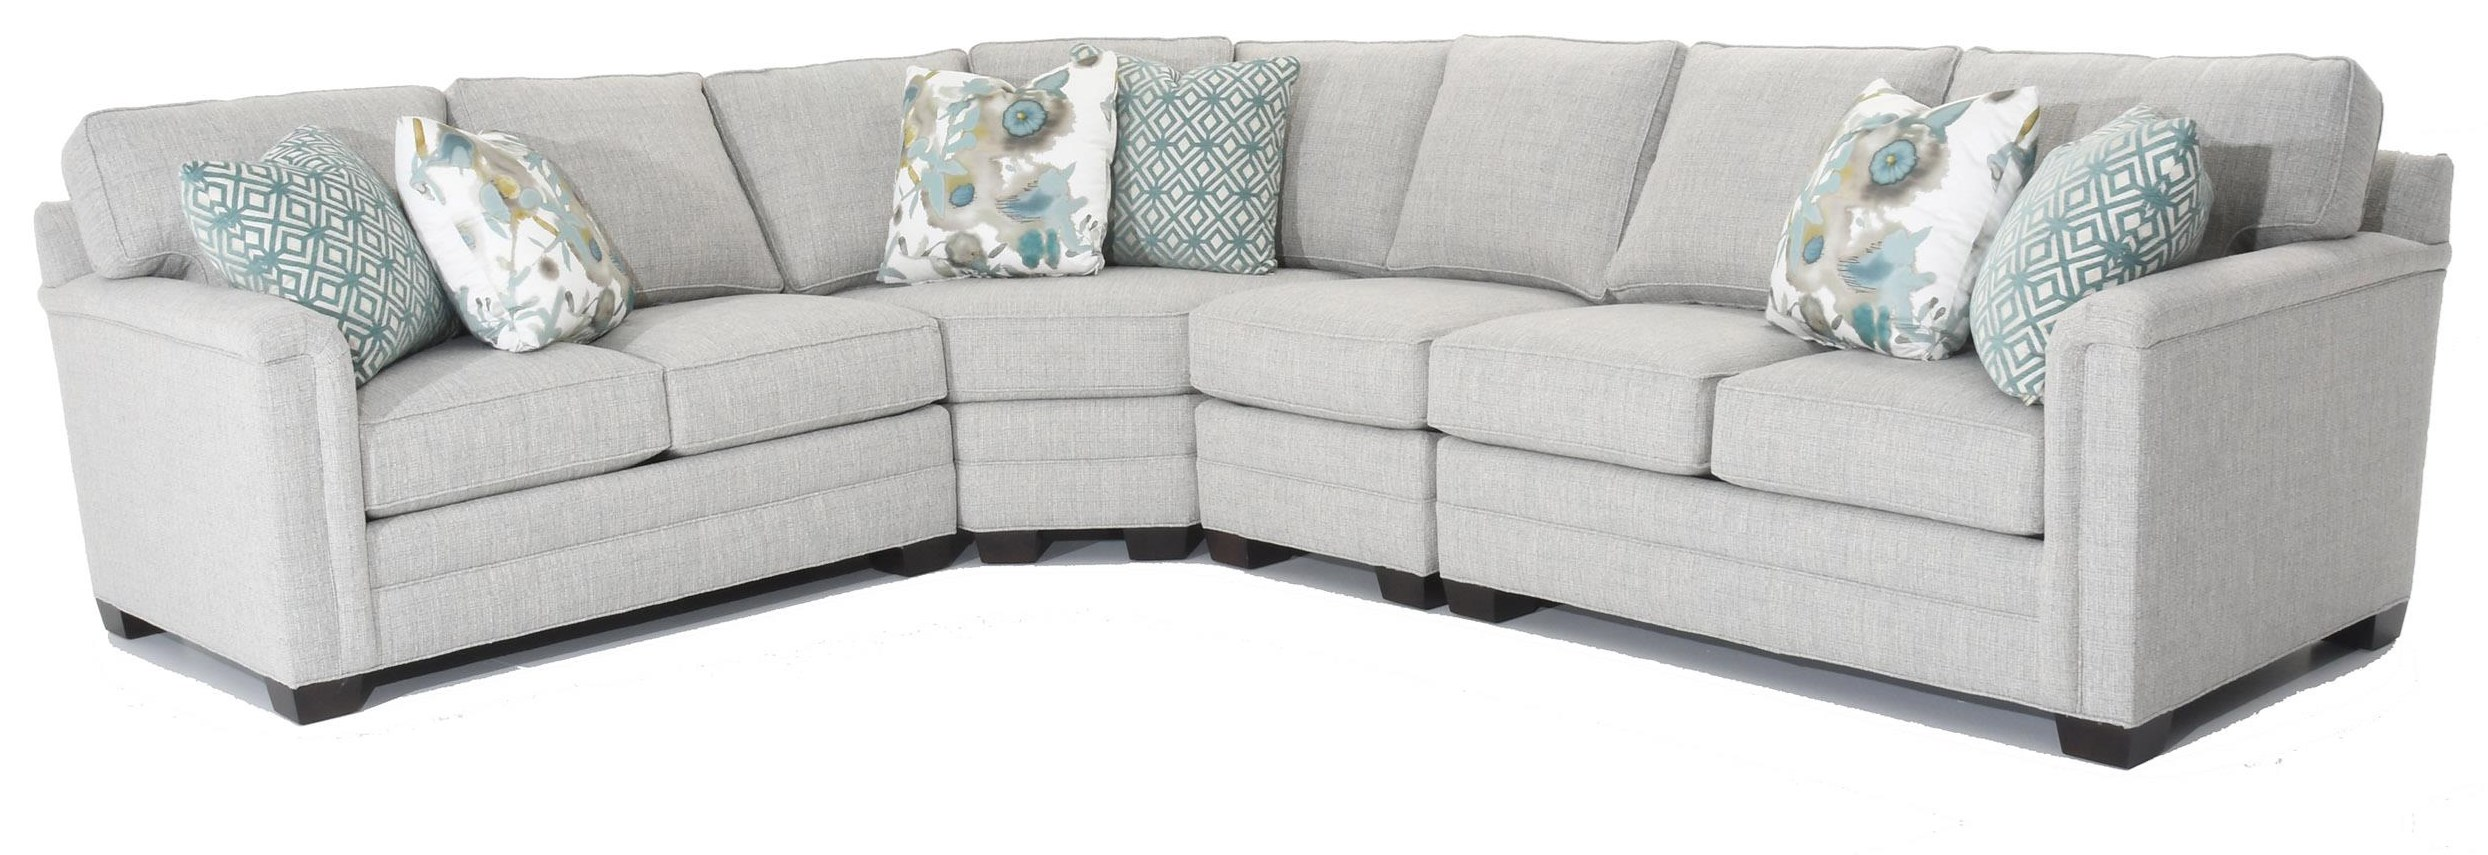 Solutions 2053 Customizable Sectional by Huntington House at Baer's Furniture